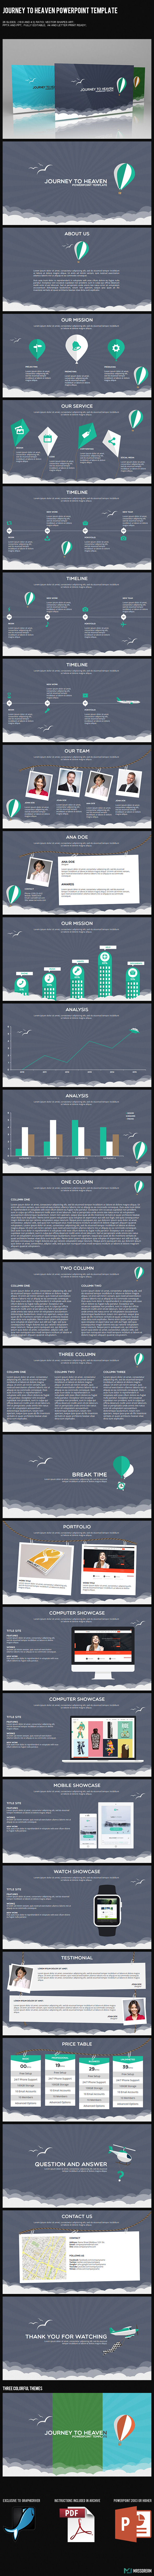 Journey to Heaven PowerPoint Template (PowerPoint Templates)